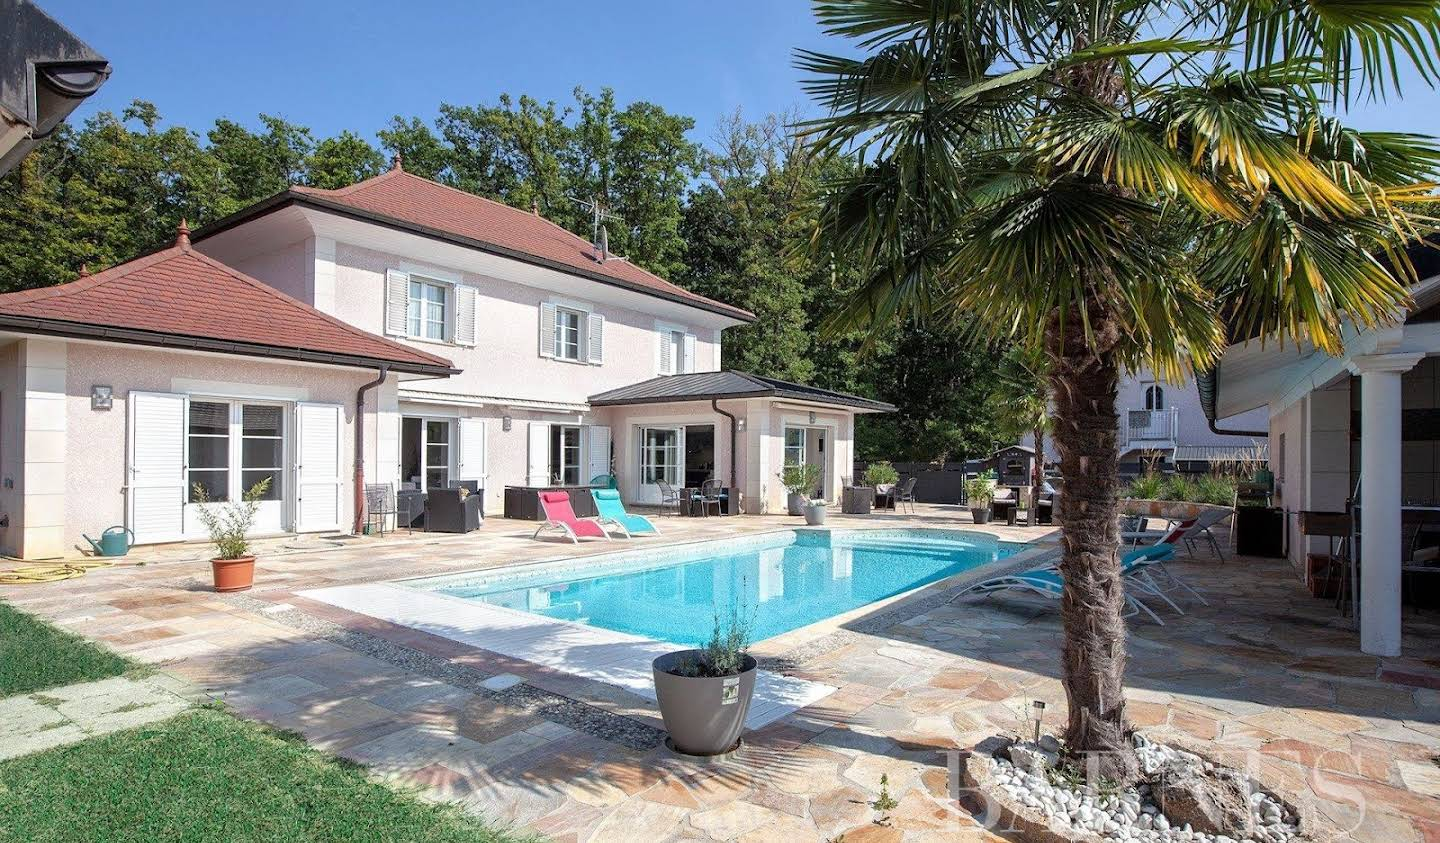 Property with pool and garden Ornex